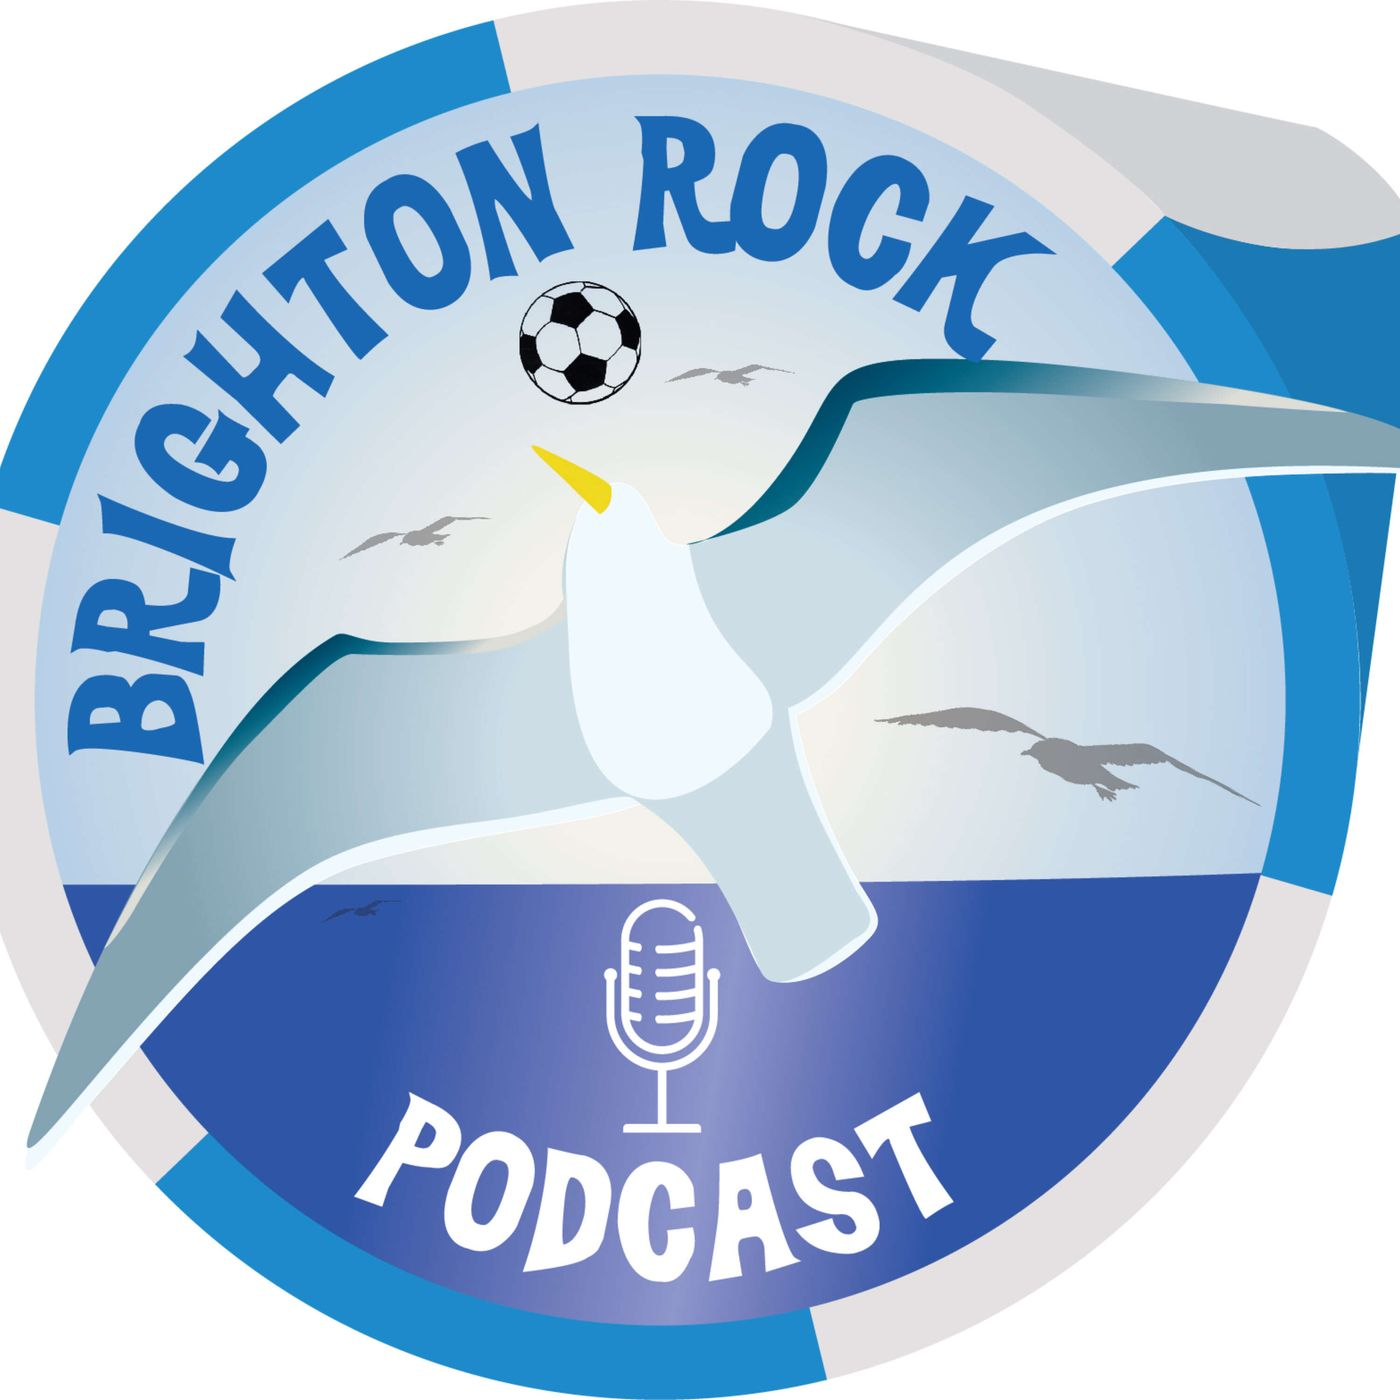 Brighton Rock Podcast